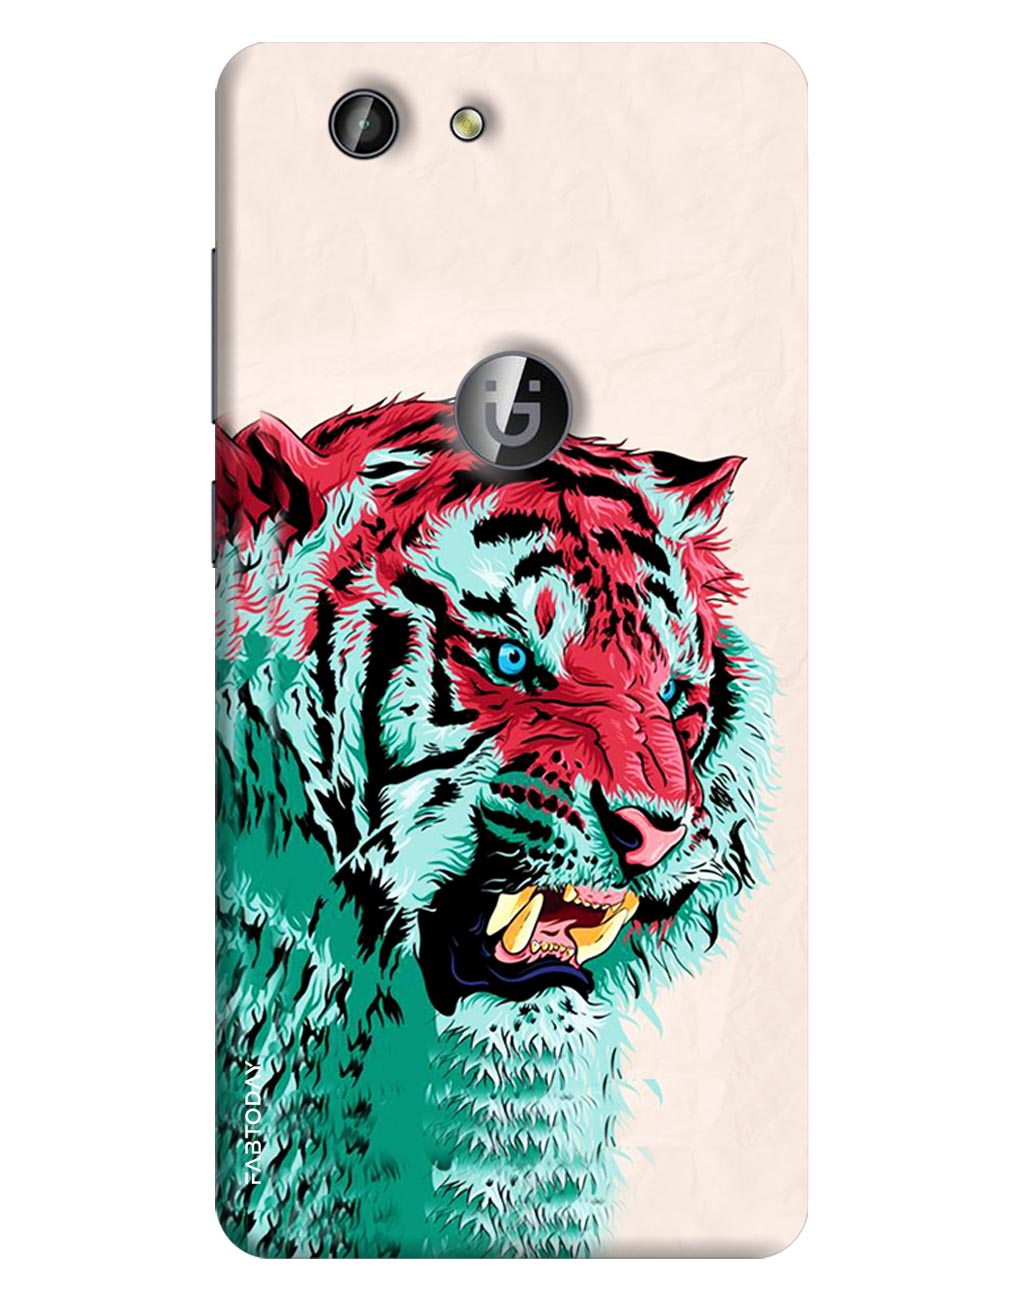 Tiger Back Cover for Gionee F103 Pro